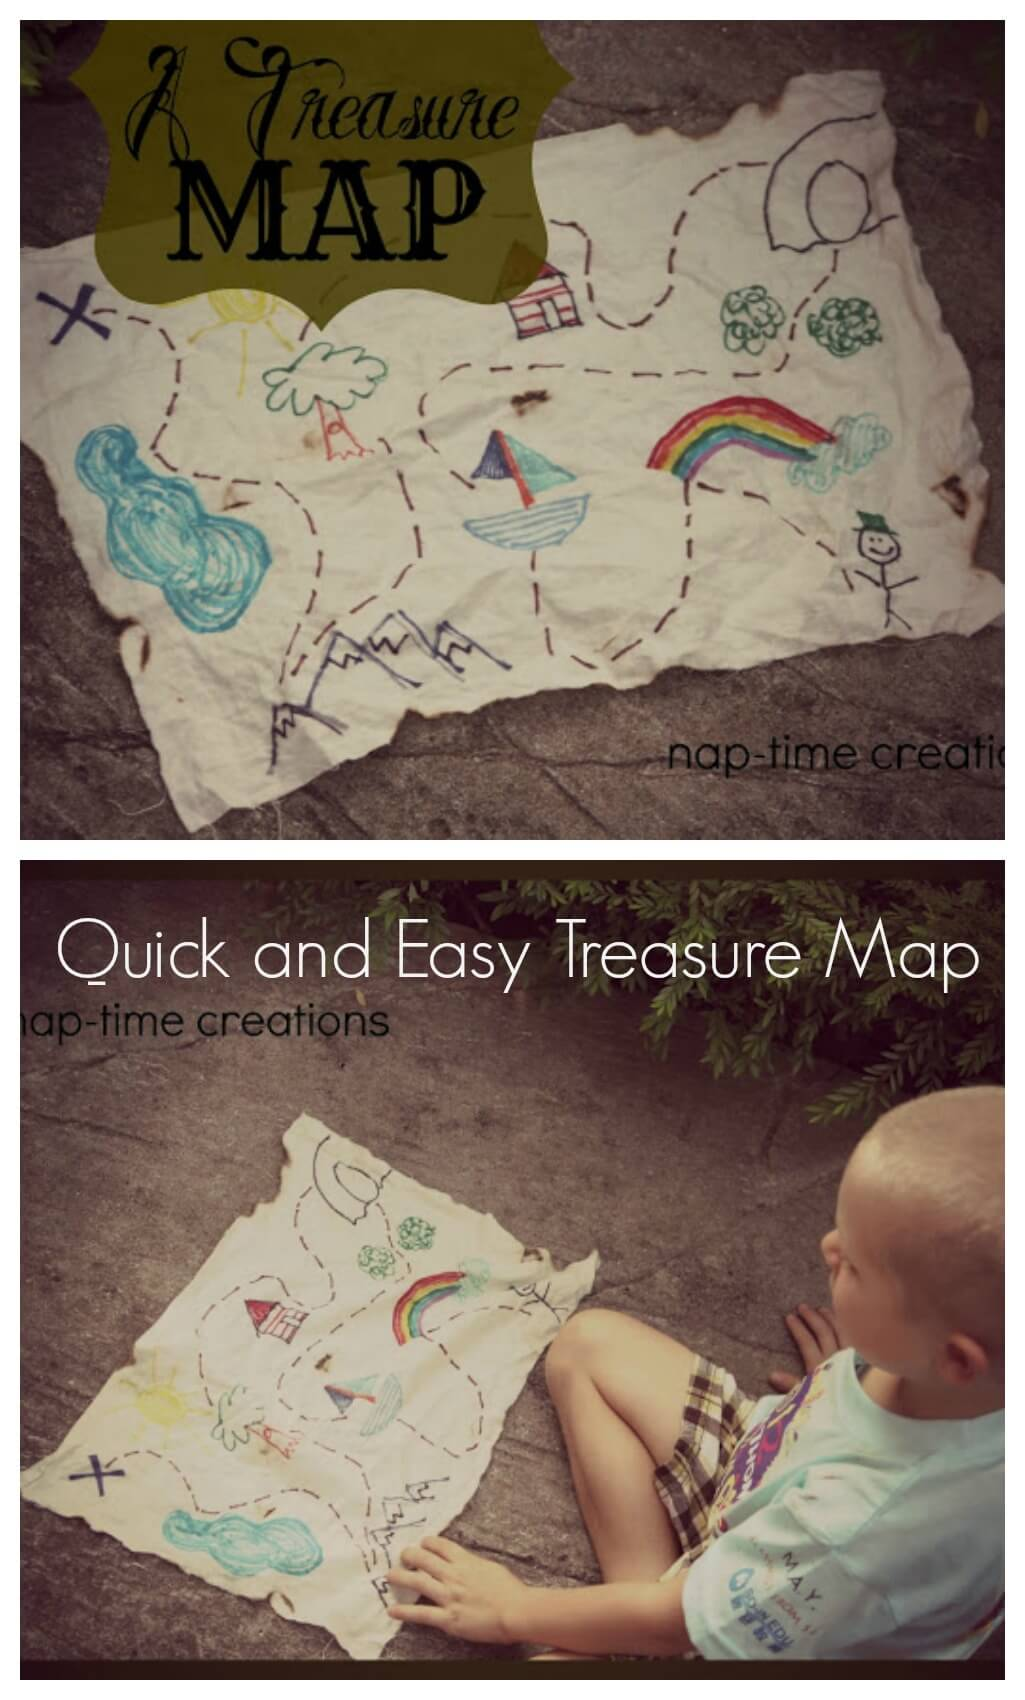 Easy Treasure Map for kids from Life Sew Savory